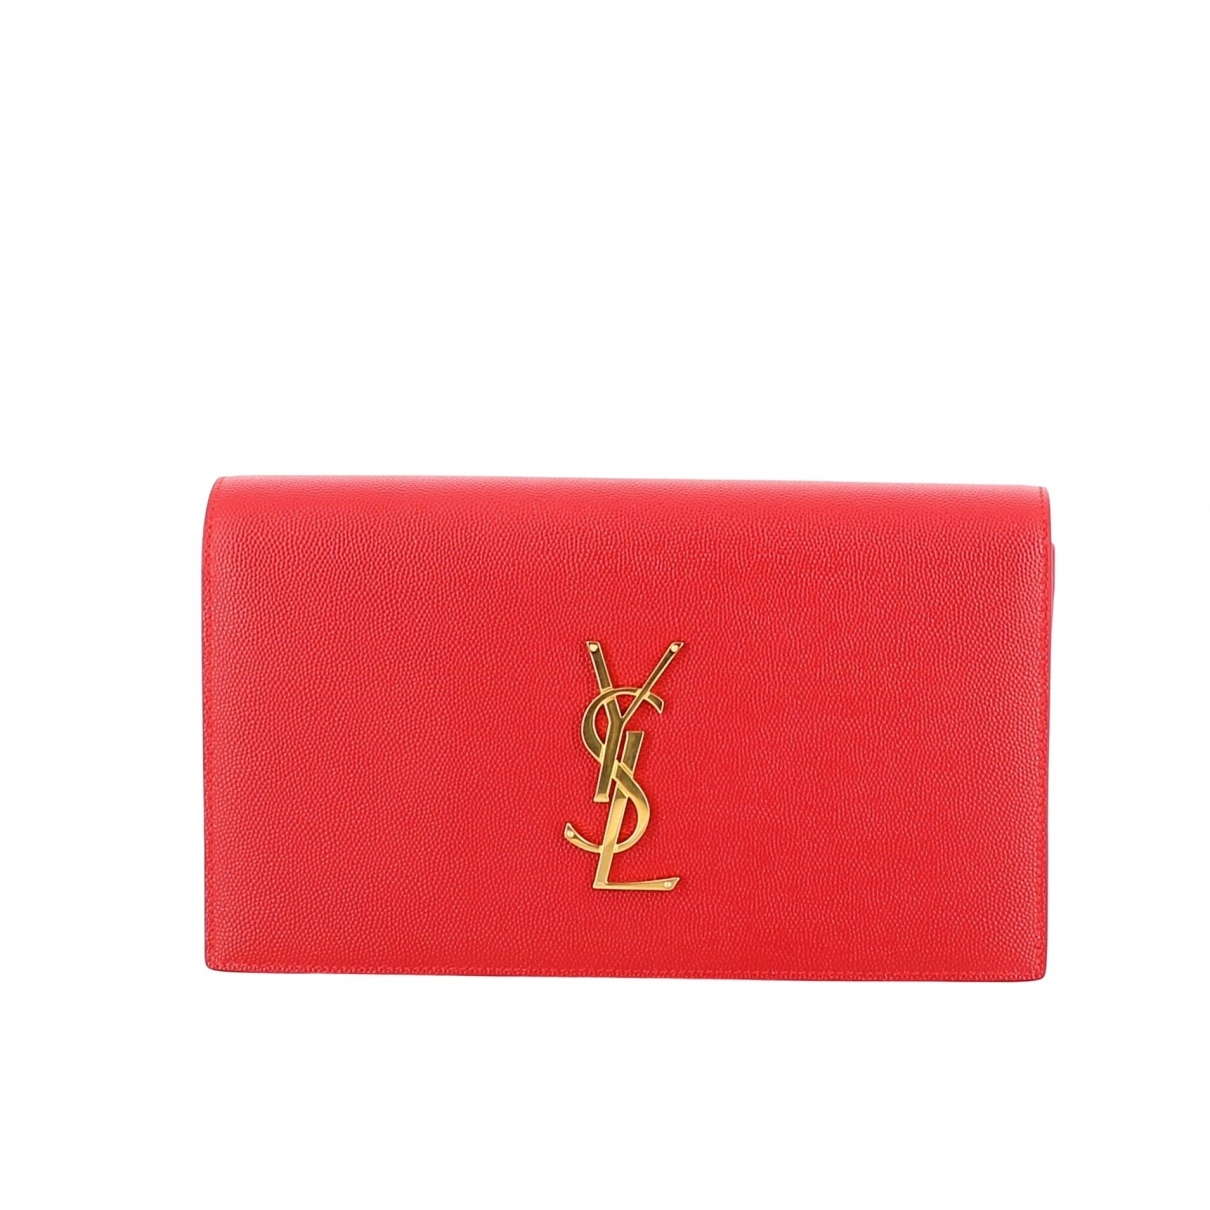 Saint Laurent \N Red Leather Clutch bag for Women \N